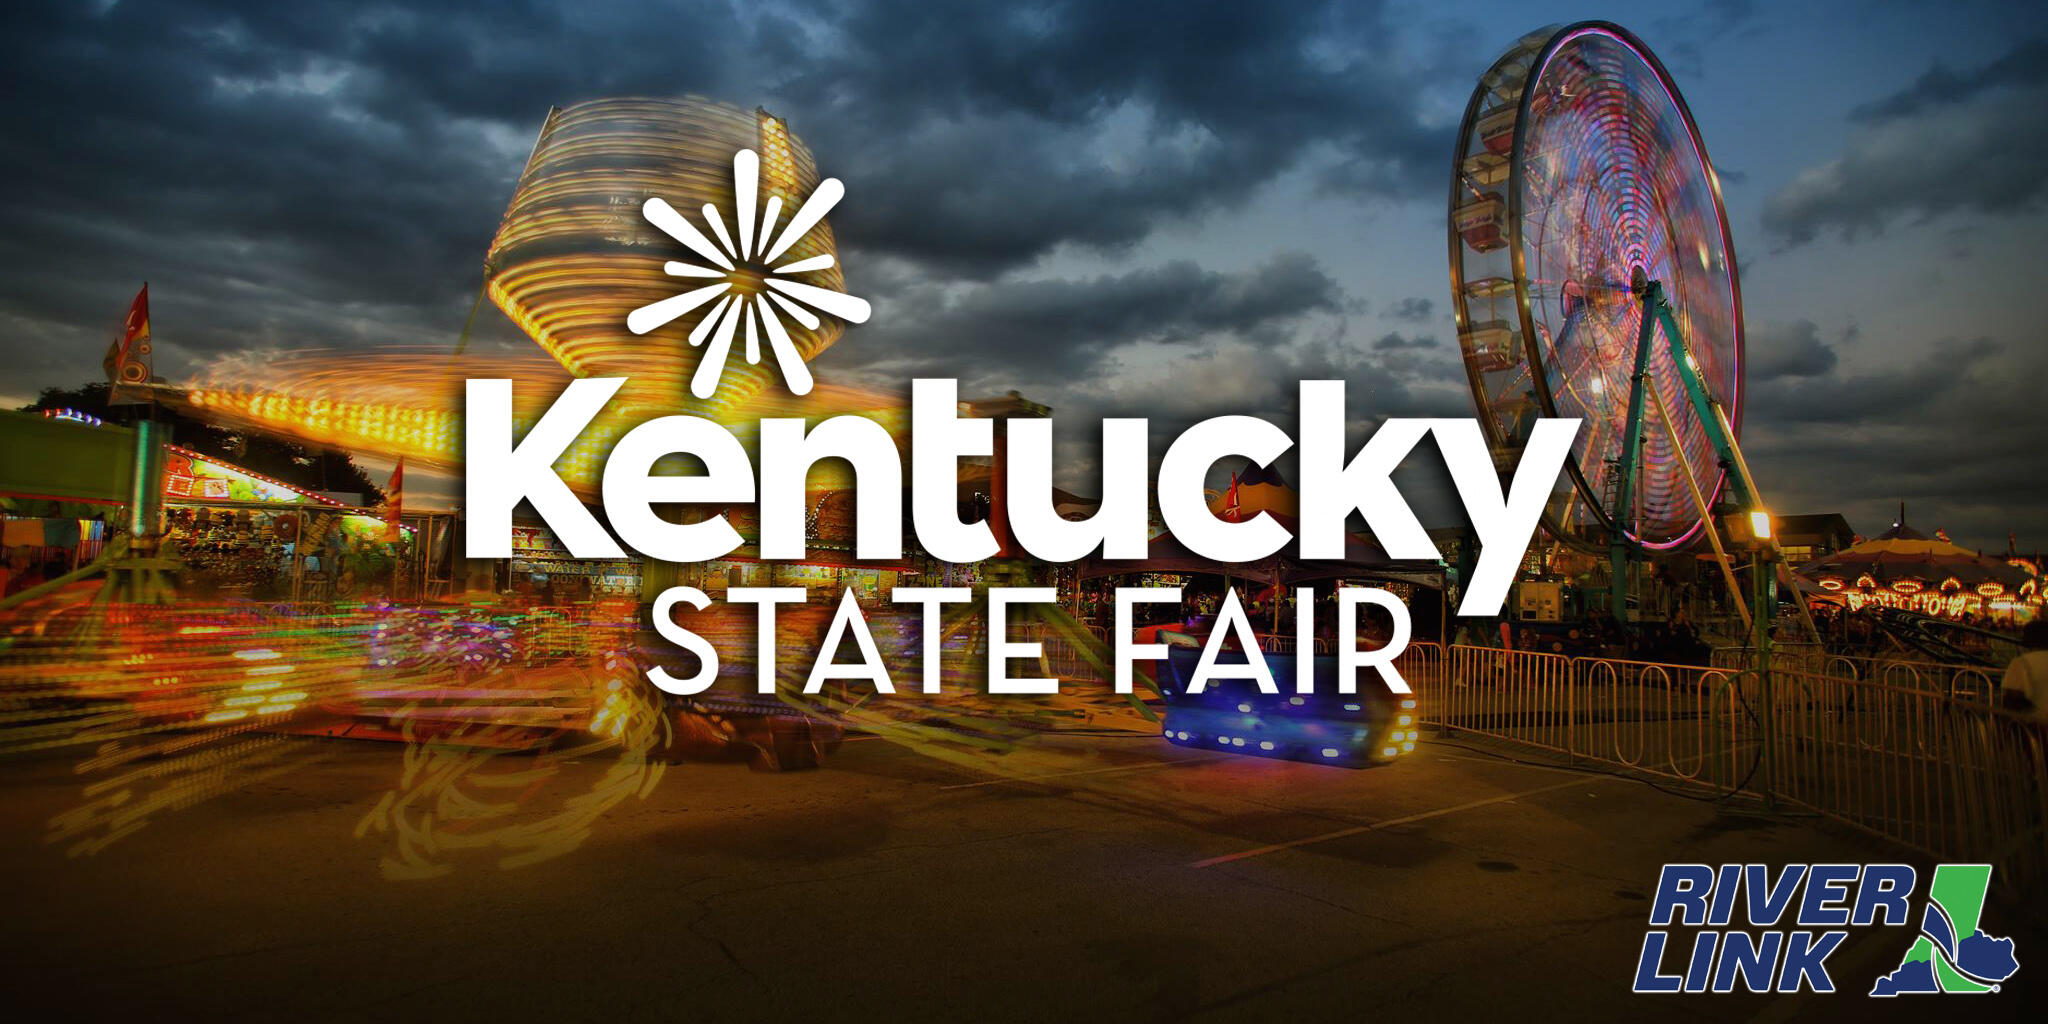 The iHeartRadio MegaBooth at the Kentucky State Fair presented by Riverlink